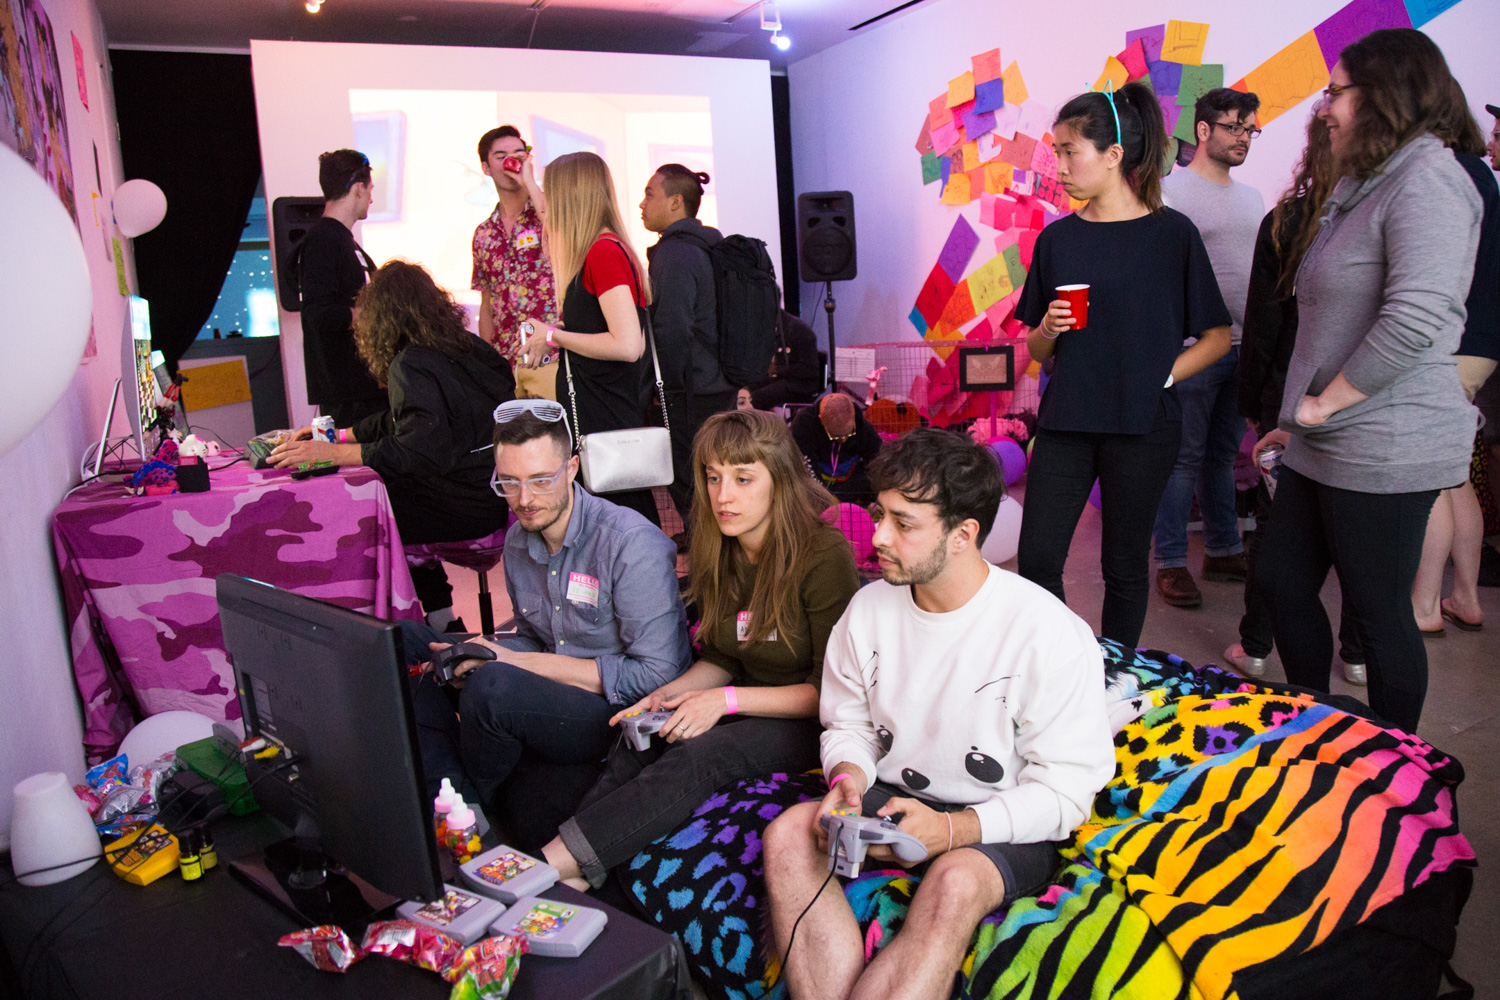 People crowded around a tv monitor, playing a game. The tv monitor is on the floor and the people are sat on a zebra print throw blanket.